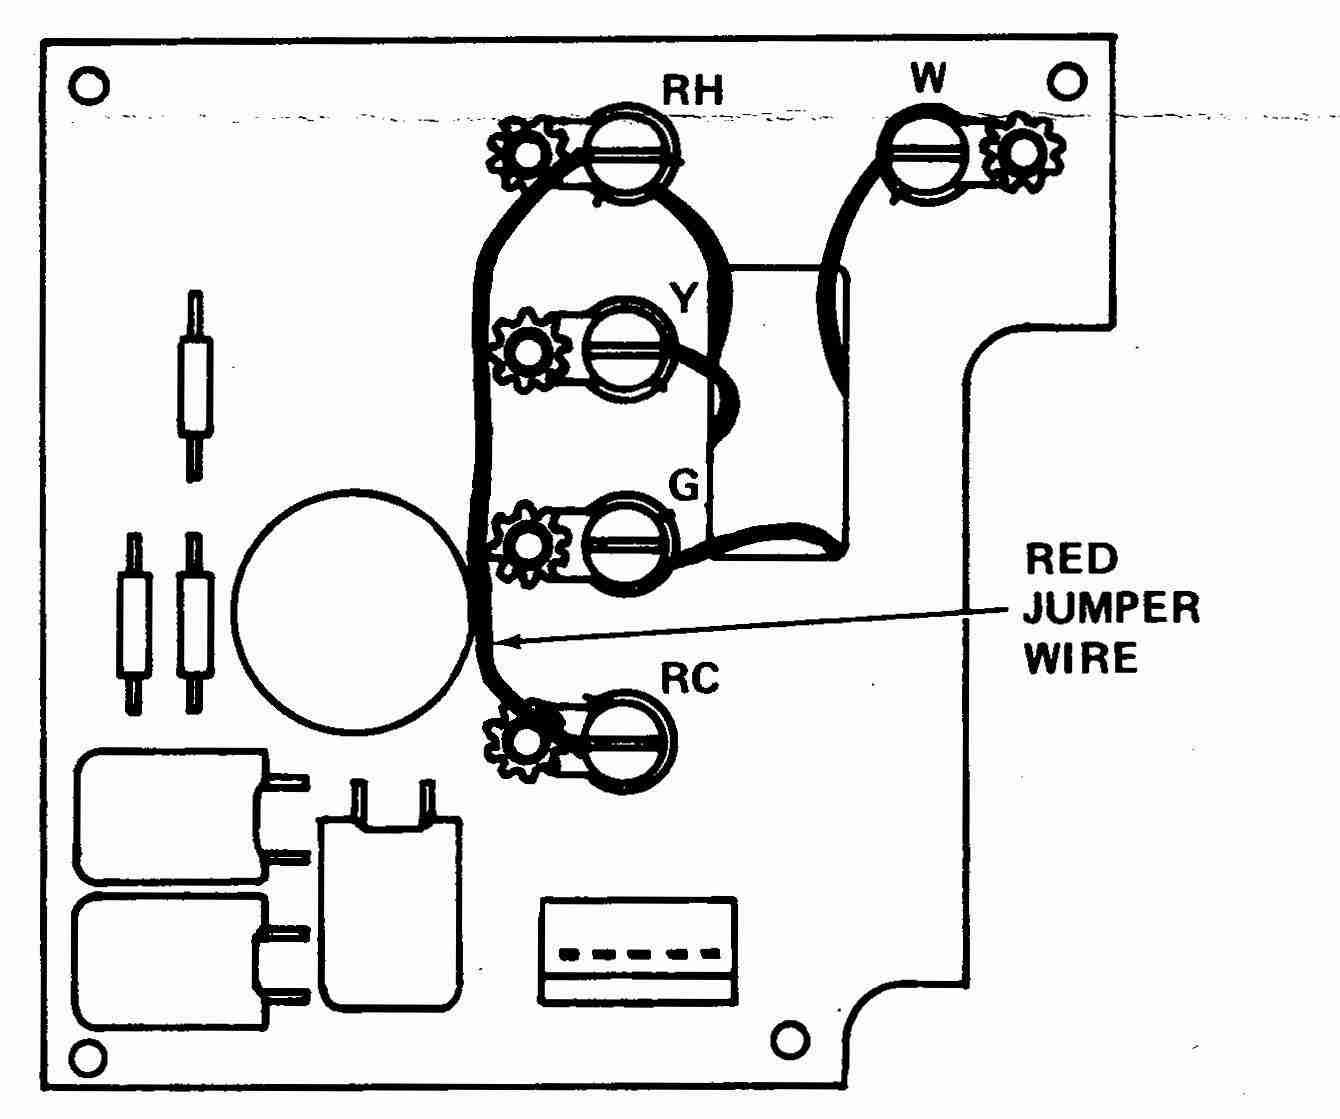 hight resolution of how wire a white rodgers room thermostat white rodgers thermostat white rodgers zone valve wiring schematic white rodgers wiring schematic